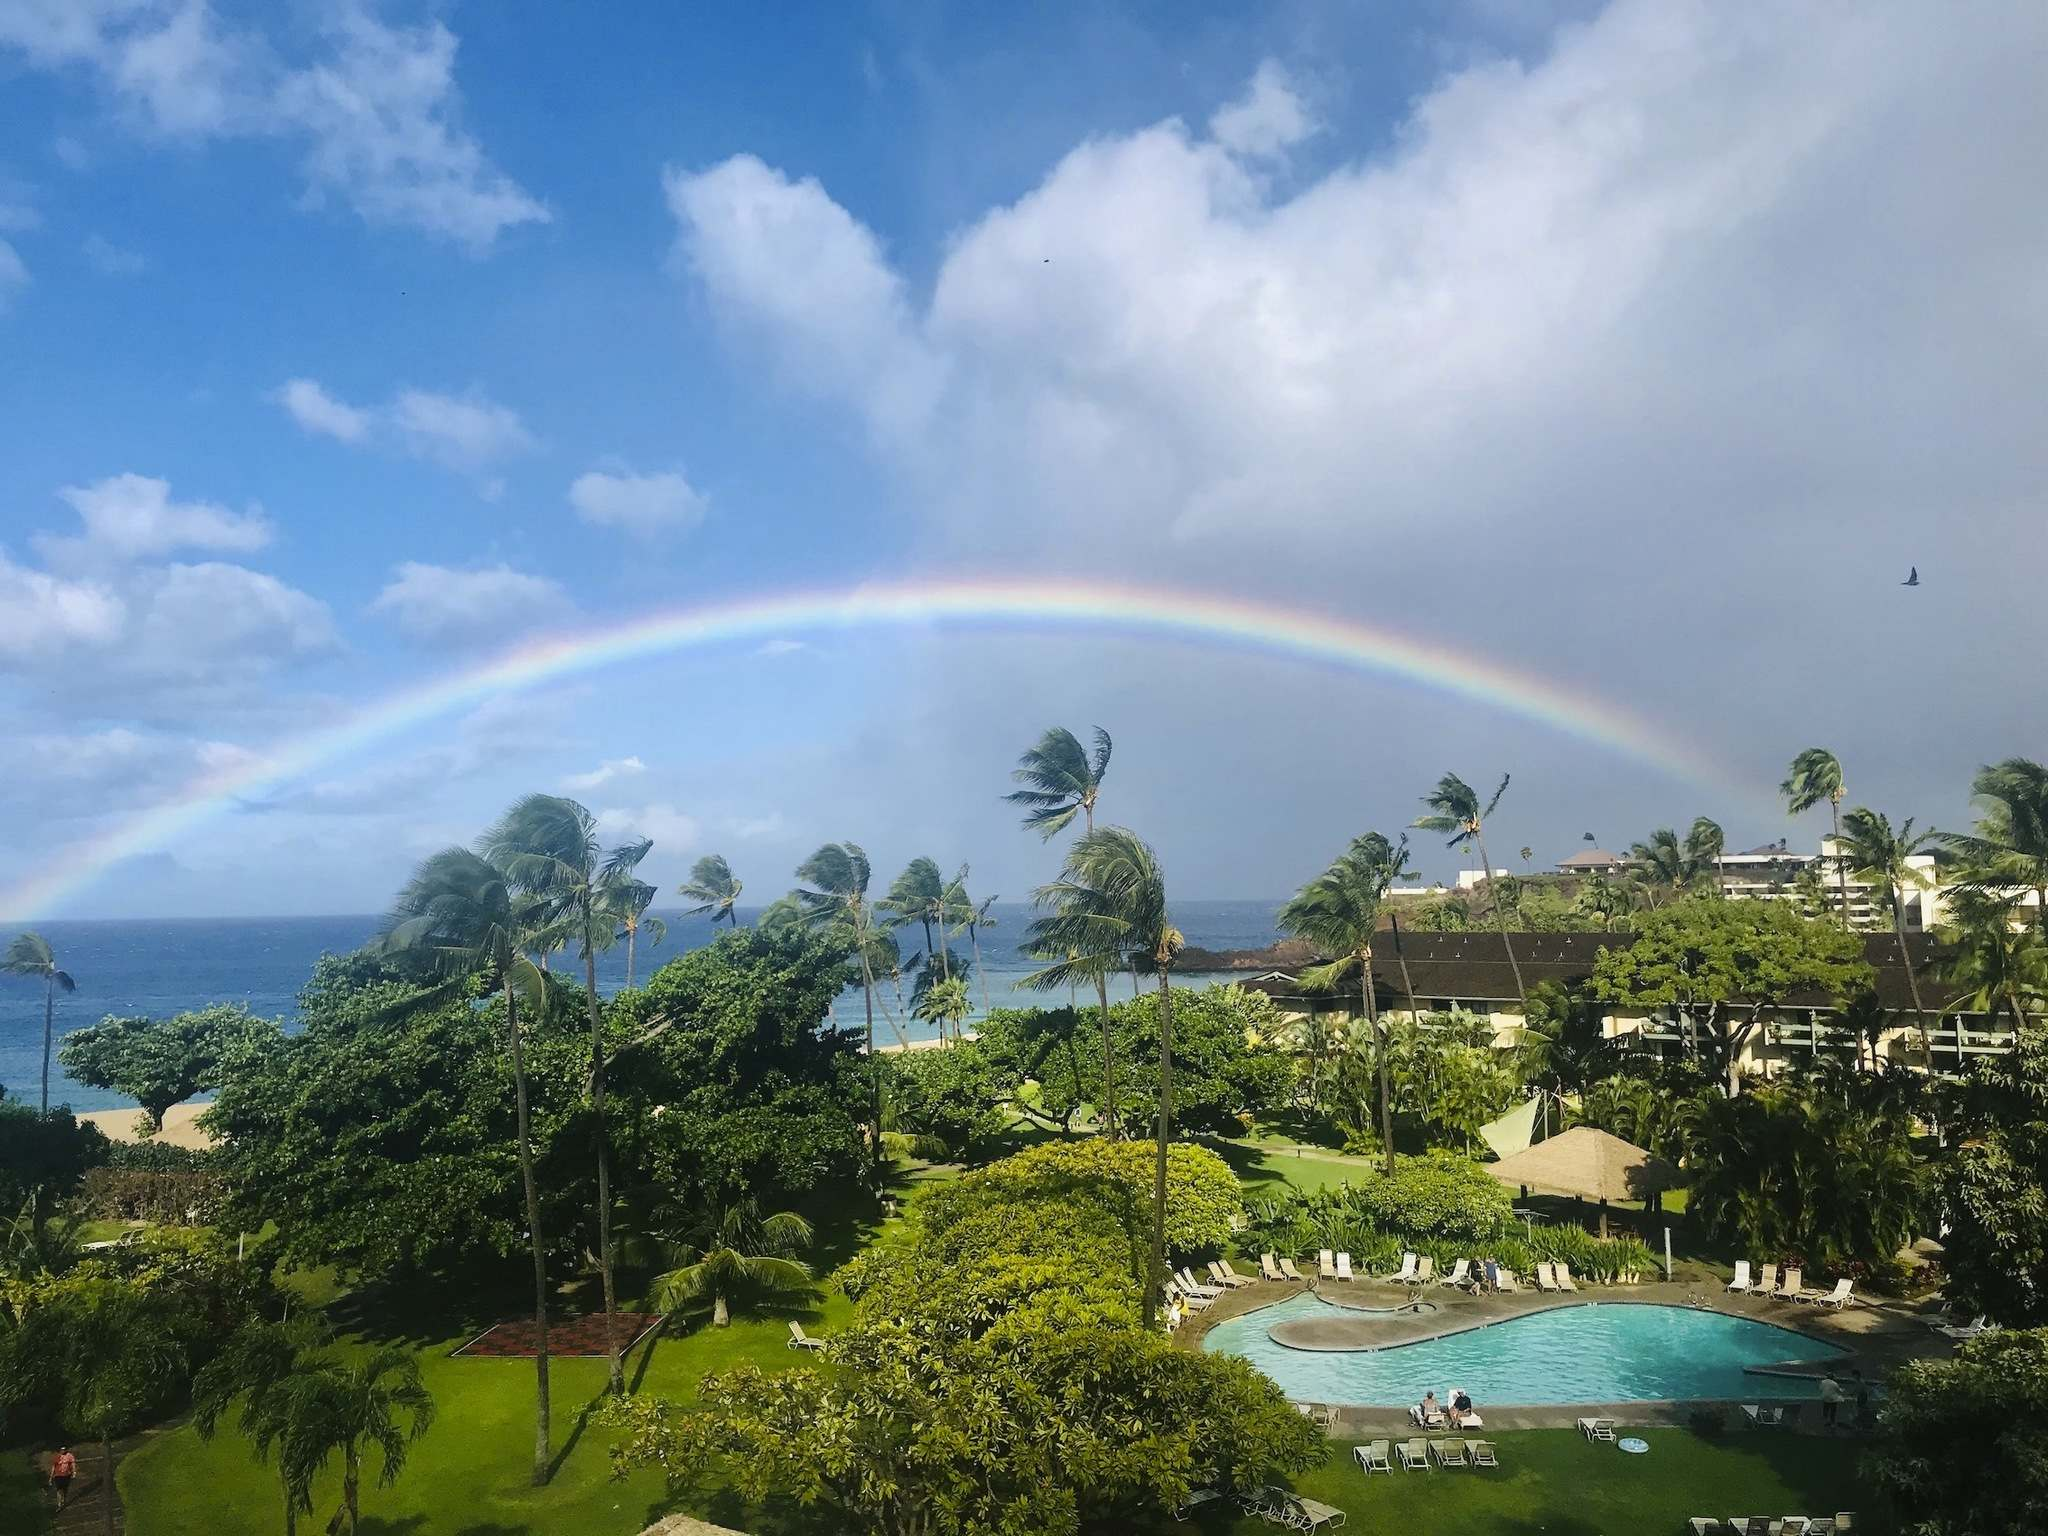 </p><p>Photos by Kim Pemberton / Winnipeg Free Press</p><p>It's not surprising one of the nicknames for Hawaii is the rainbow state. A rainbow spotted from one of the suite terraces at the Ka'anapali Beach Hotel in Maui.</p></p>